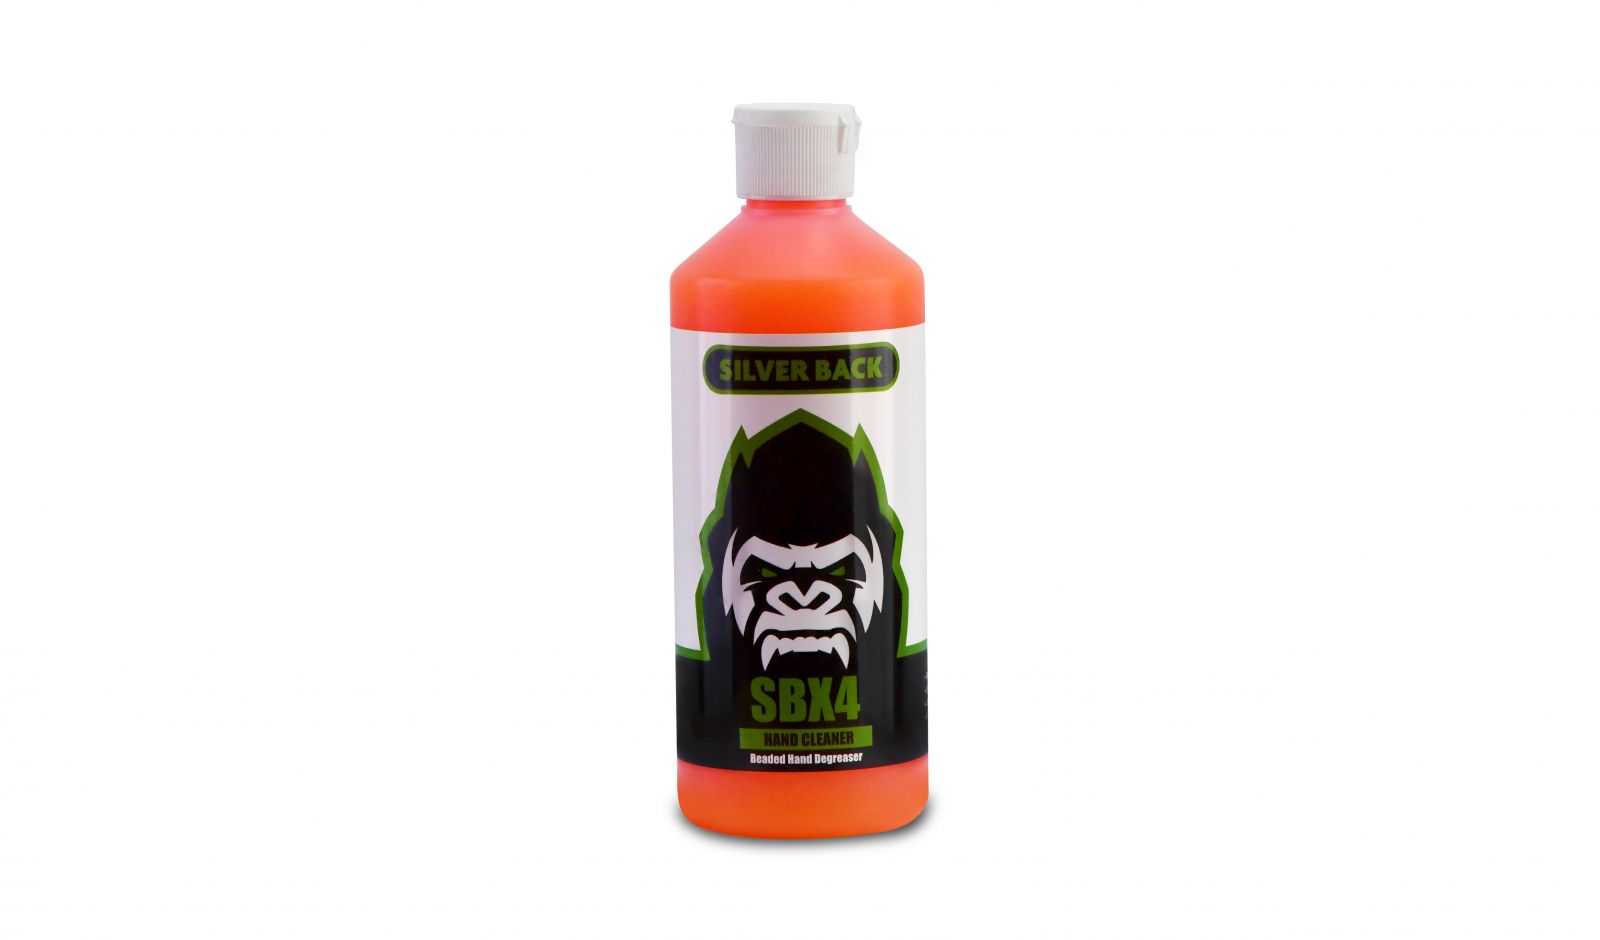 Silverback Products - 670854S image